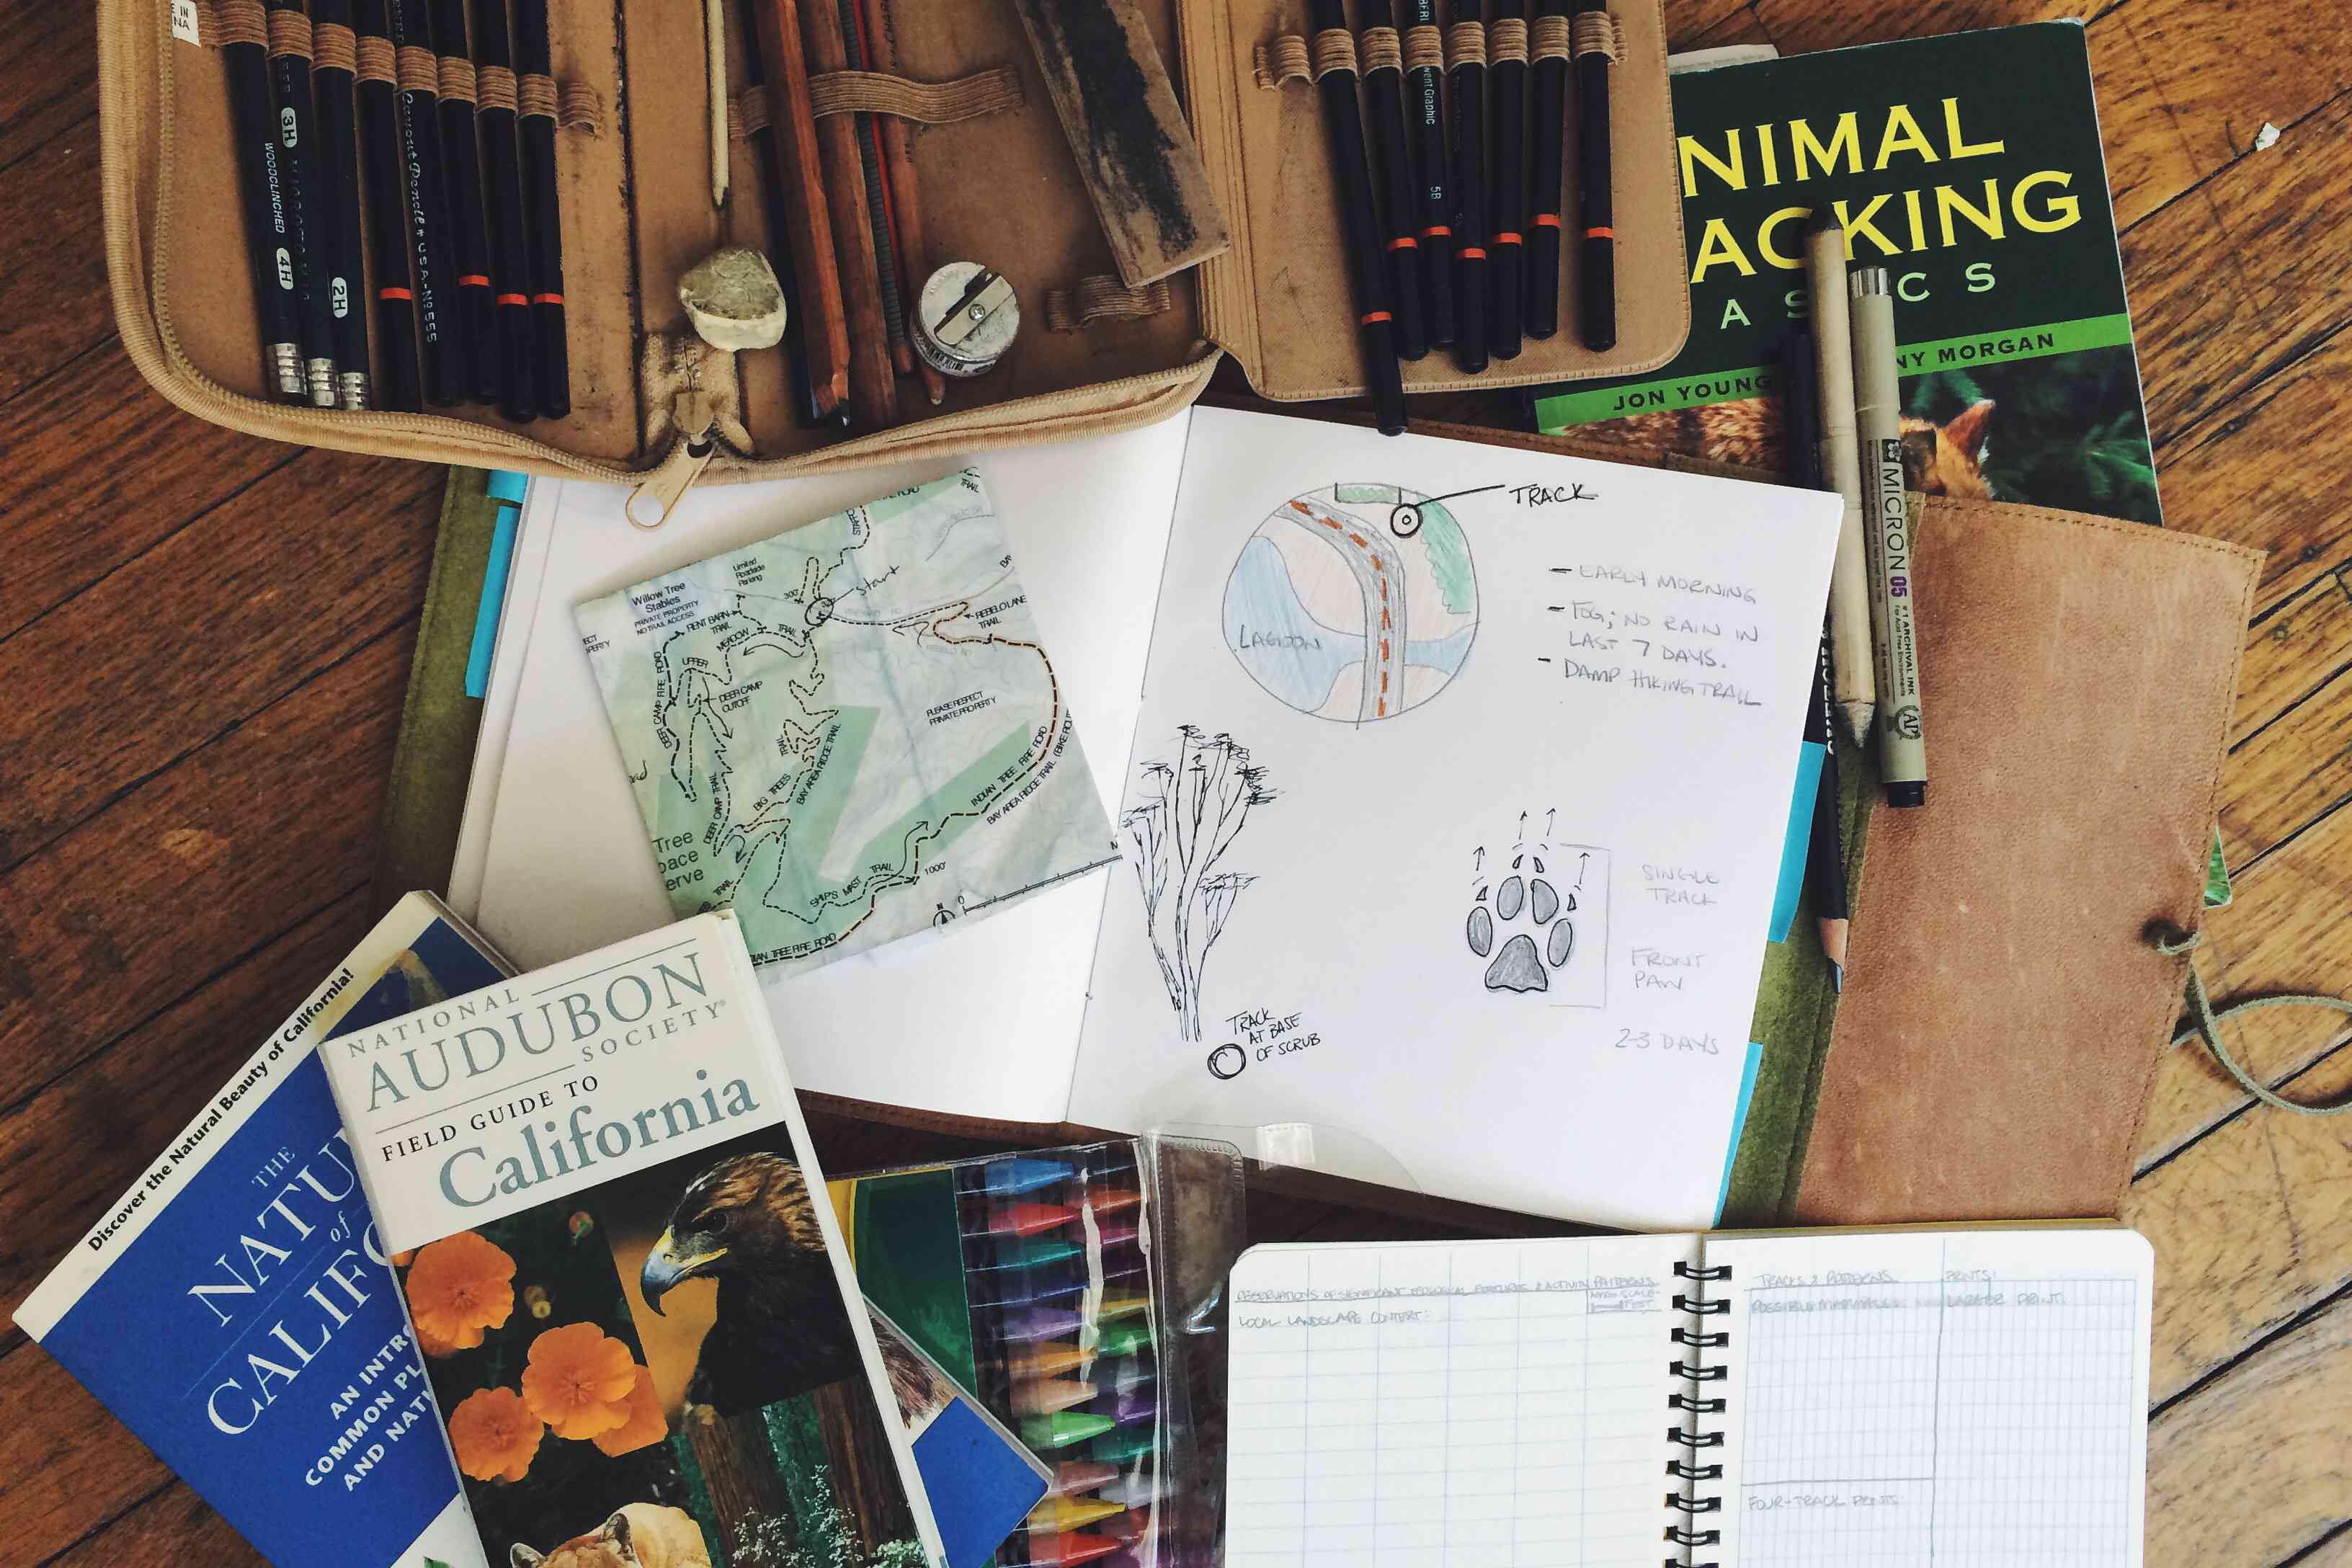 A nature journal can take whatever form you want, but ultimately it will connect you to the wild right outside your door.